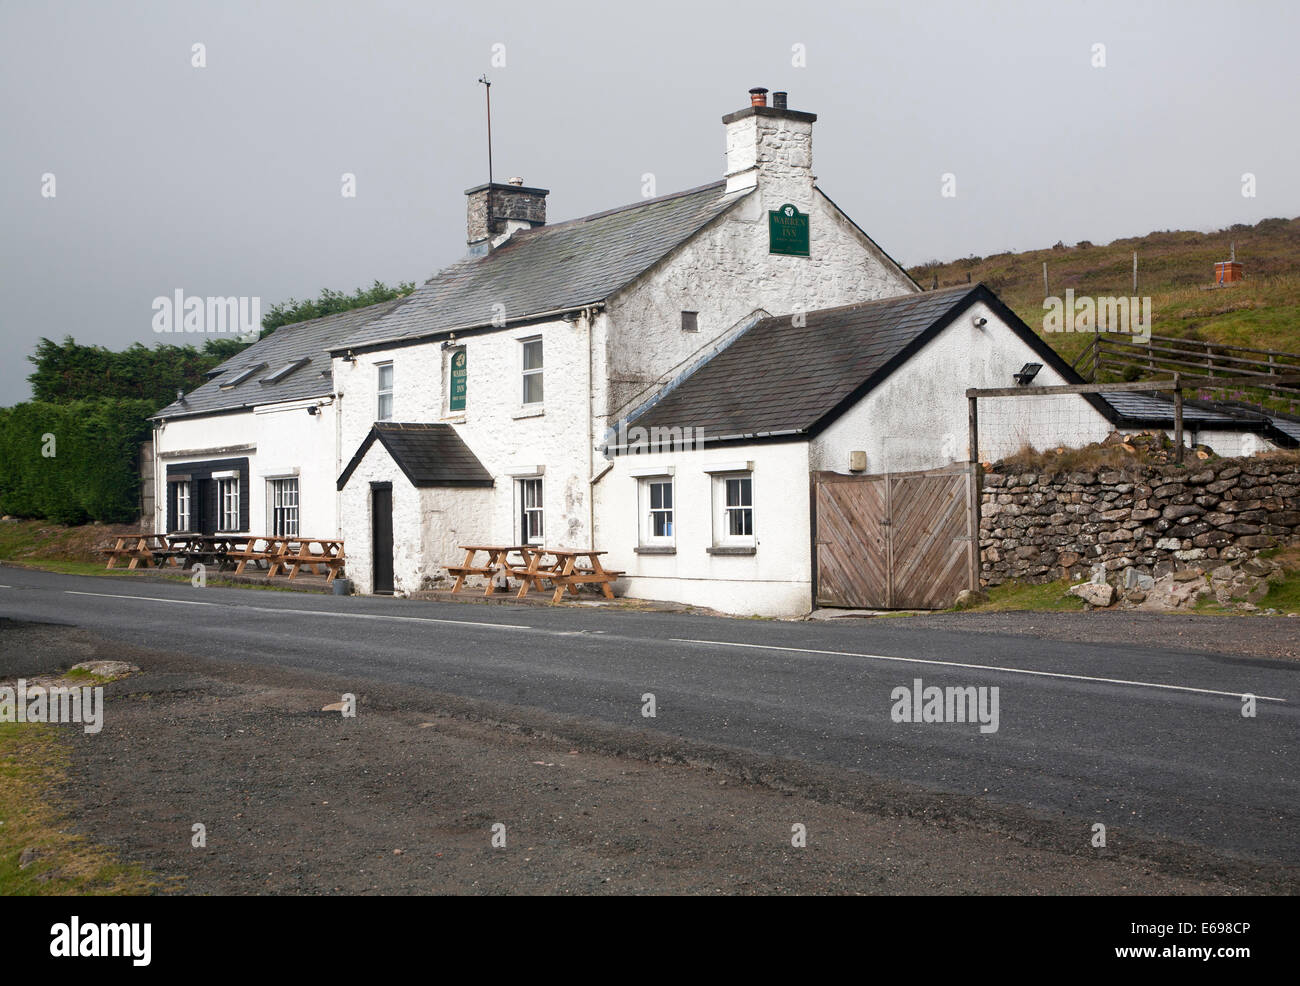 Warren House Inn, Postbridge, Dartmoor national park, Devon, England - Stock Image